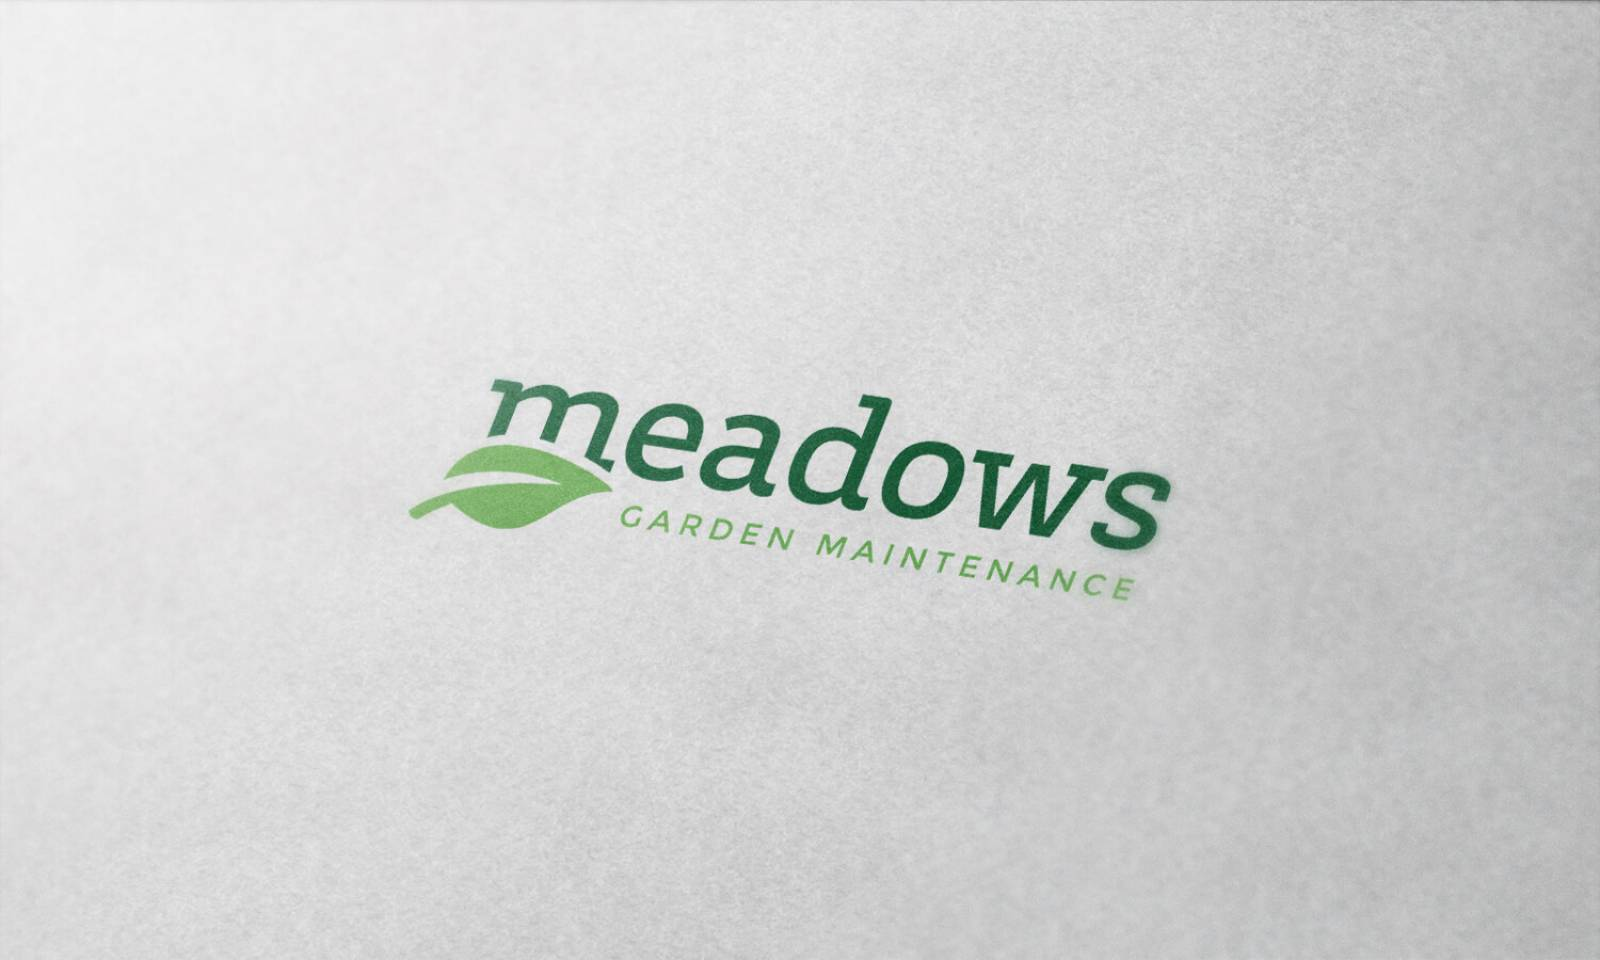 Meadows-logo-corporate-identity-agency-graphic-design-canterbury.jpg